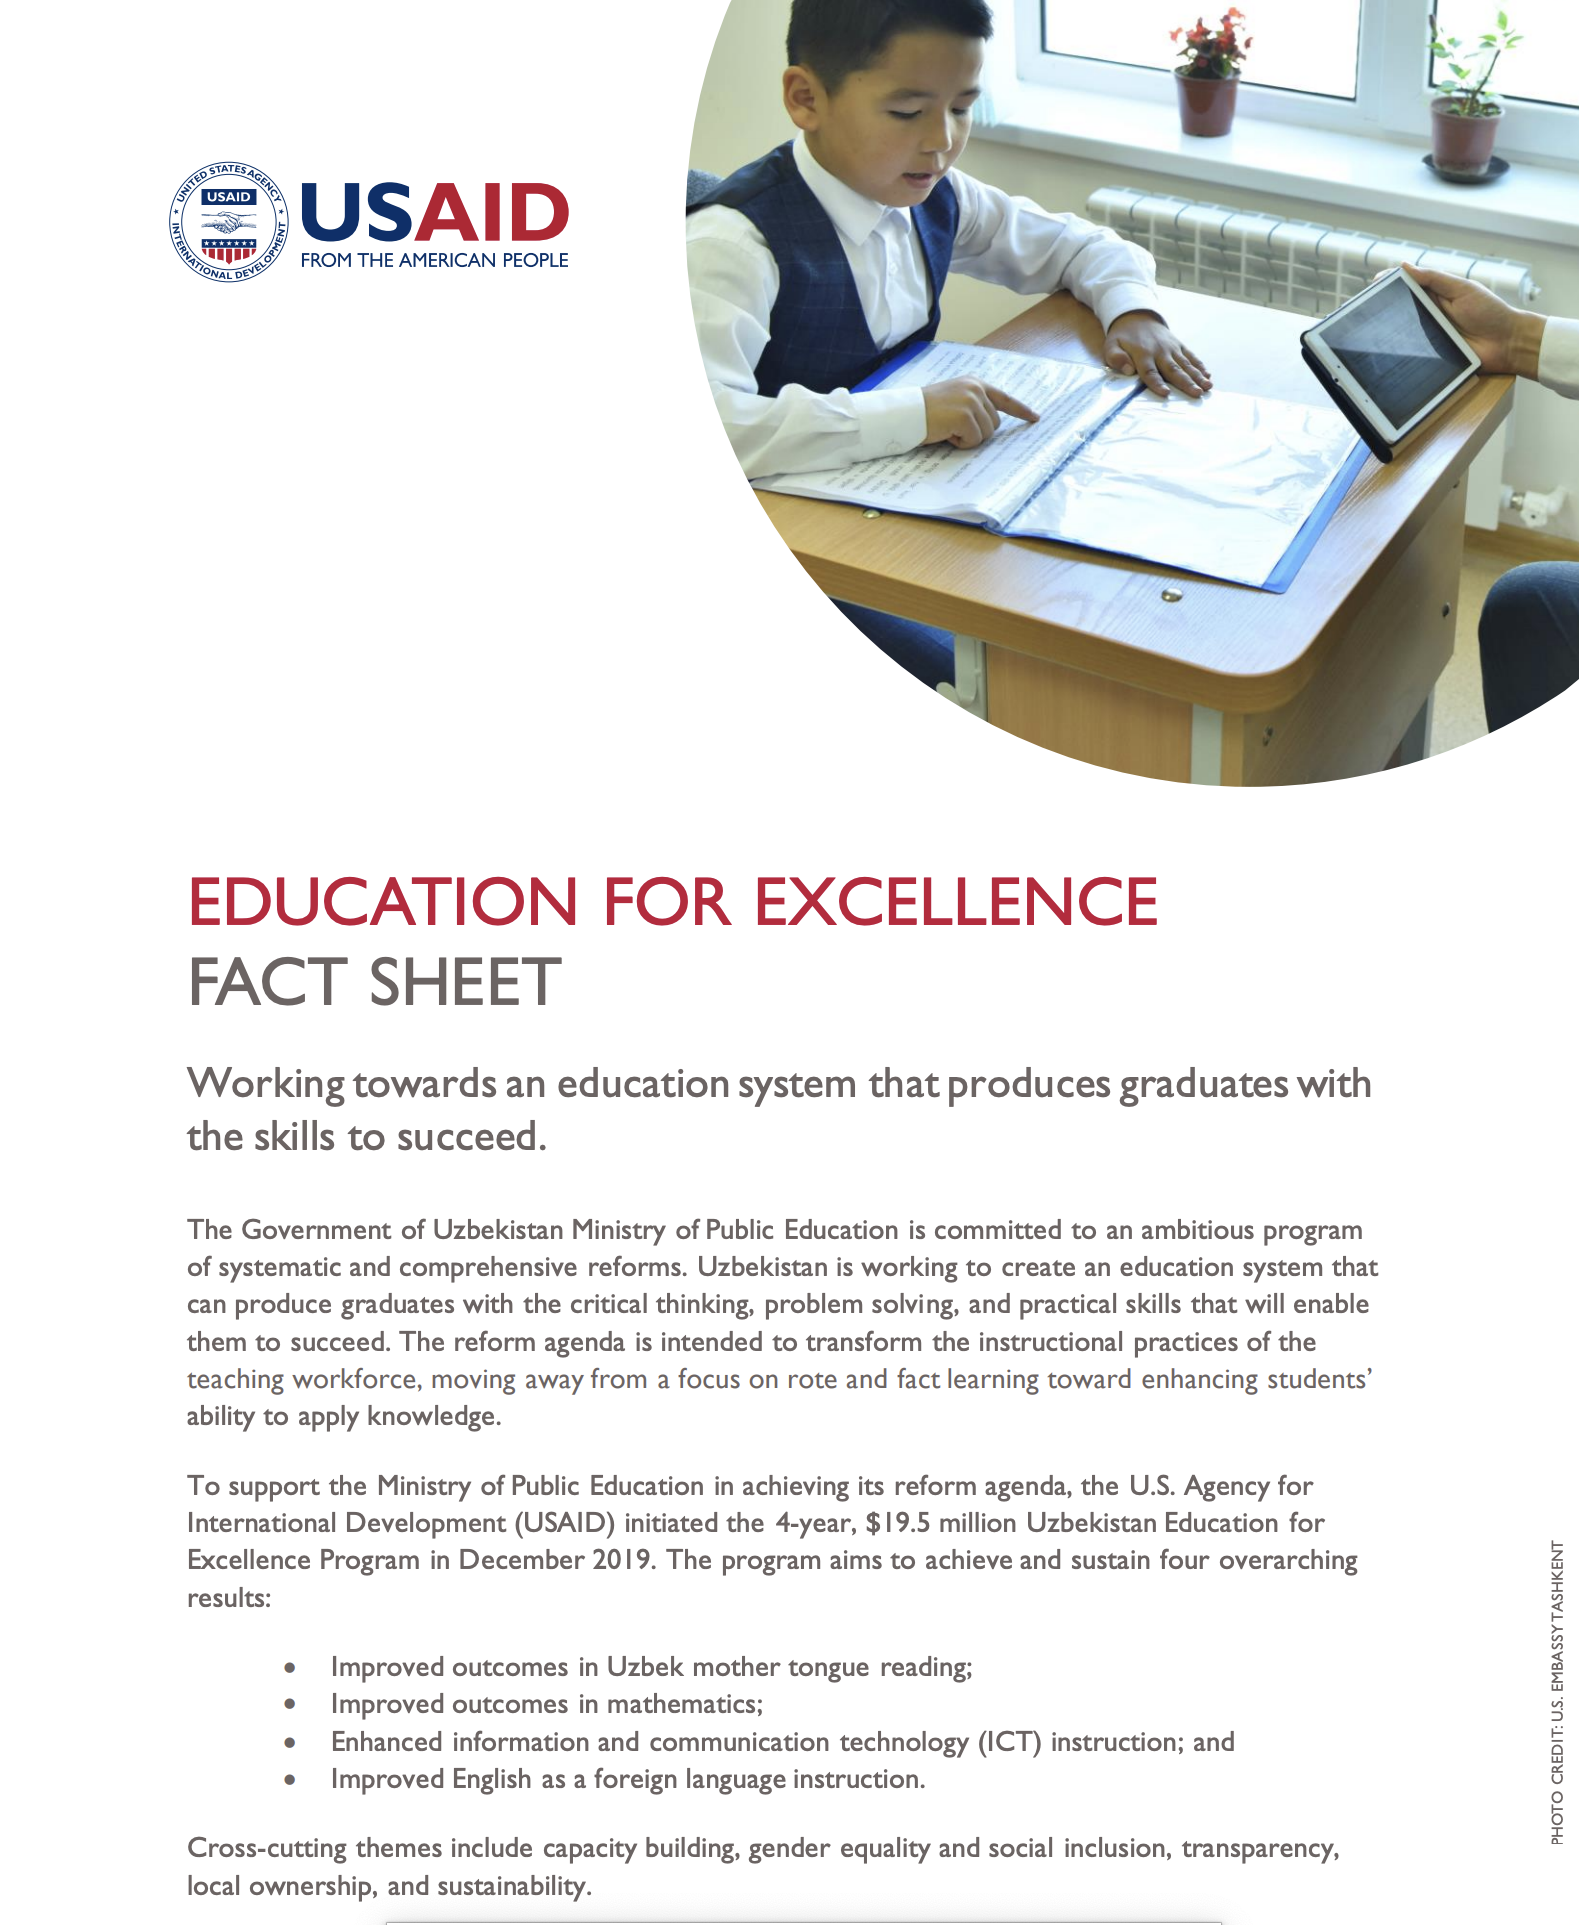 Education for Excellence Fact Sheet